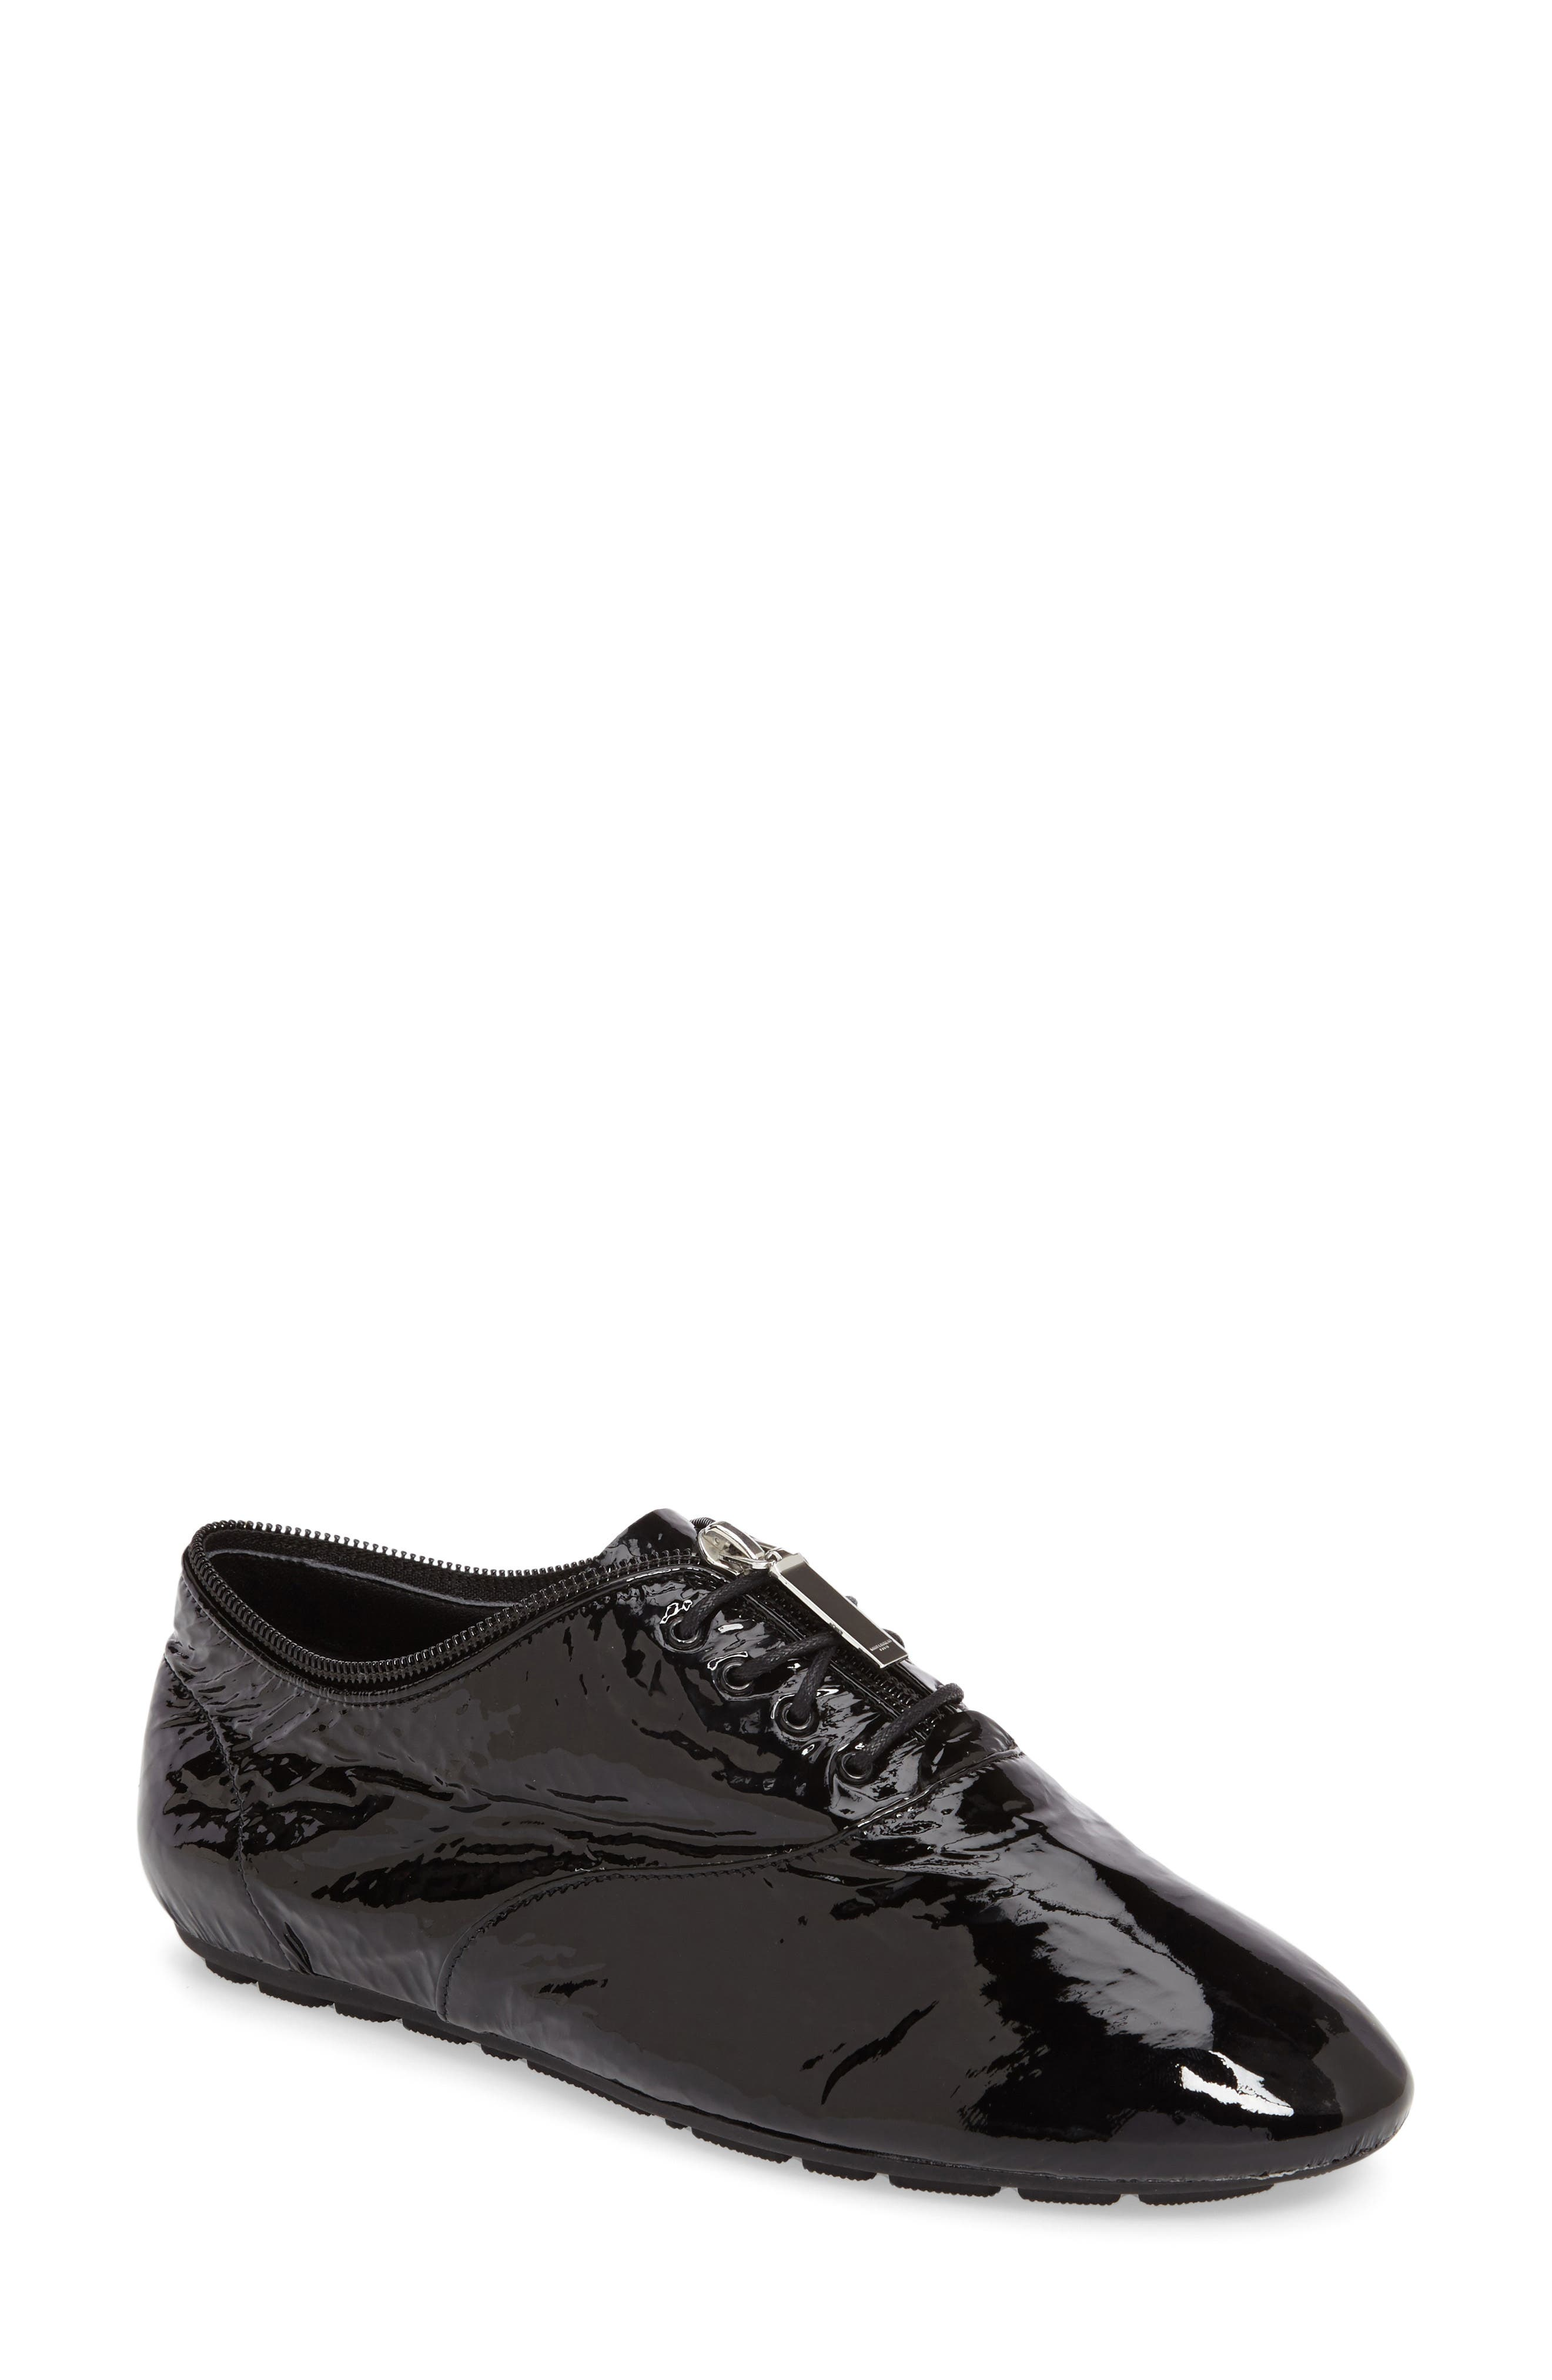 Main Image - Saint Laurent Verneuil Flat (Women)